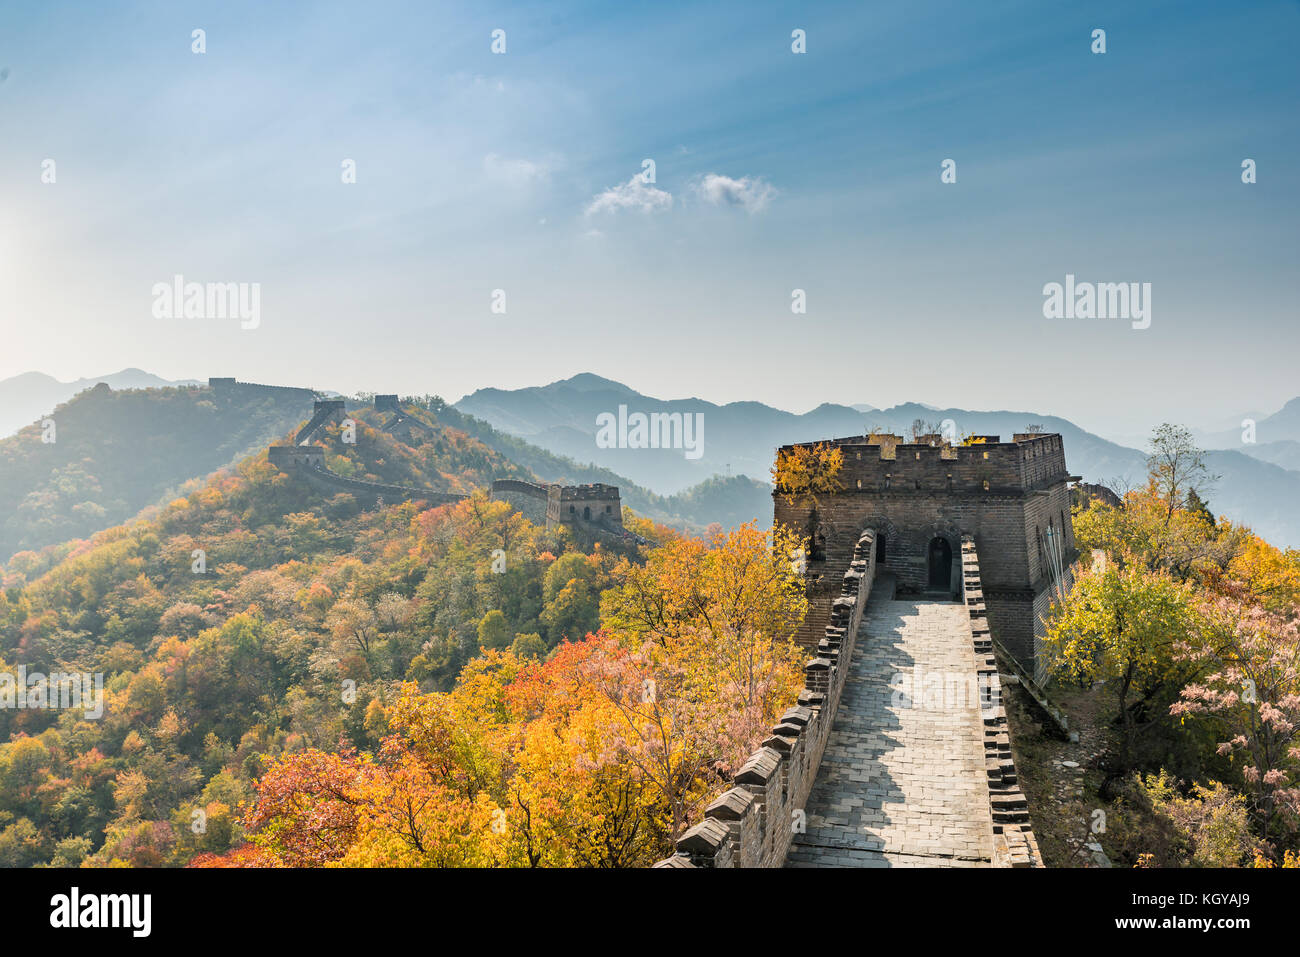 China The great wall distant view compressed towers and wall segments autumn season in mountains near Beijing ancient - Stock Image